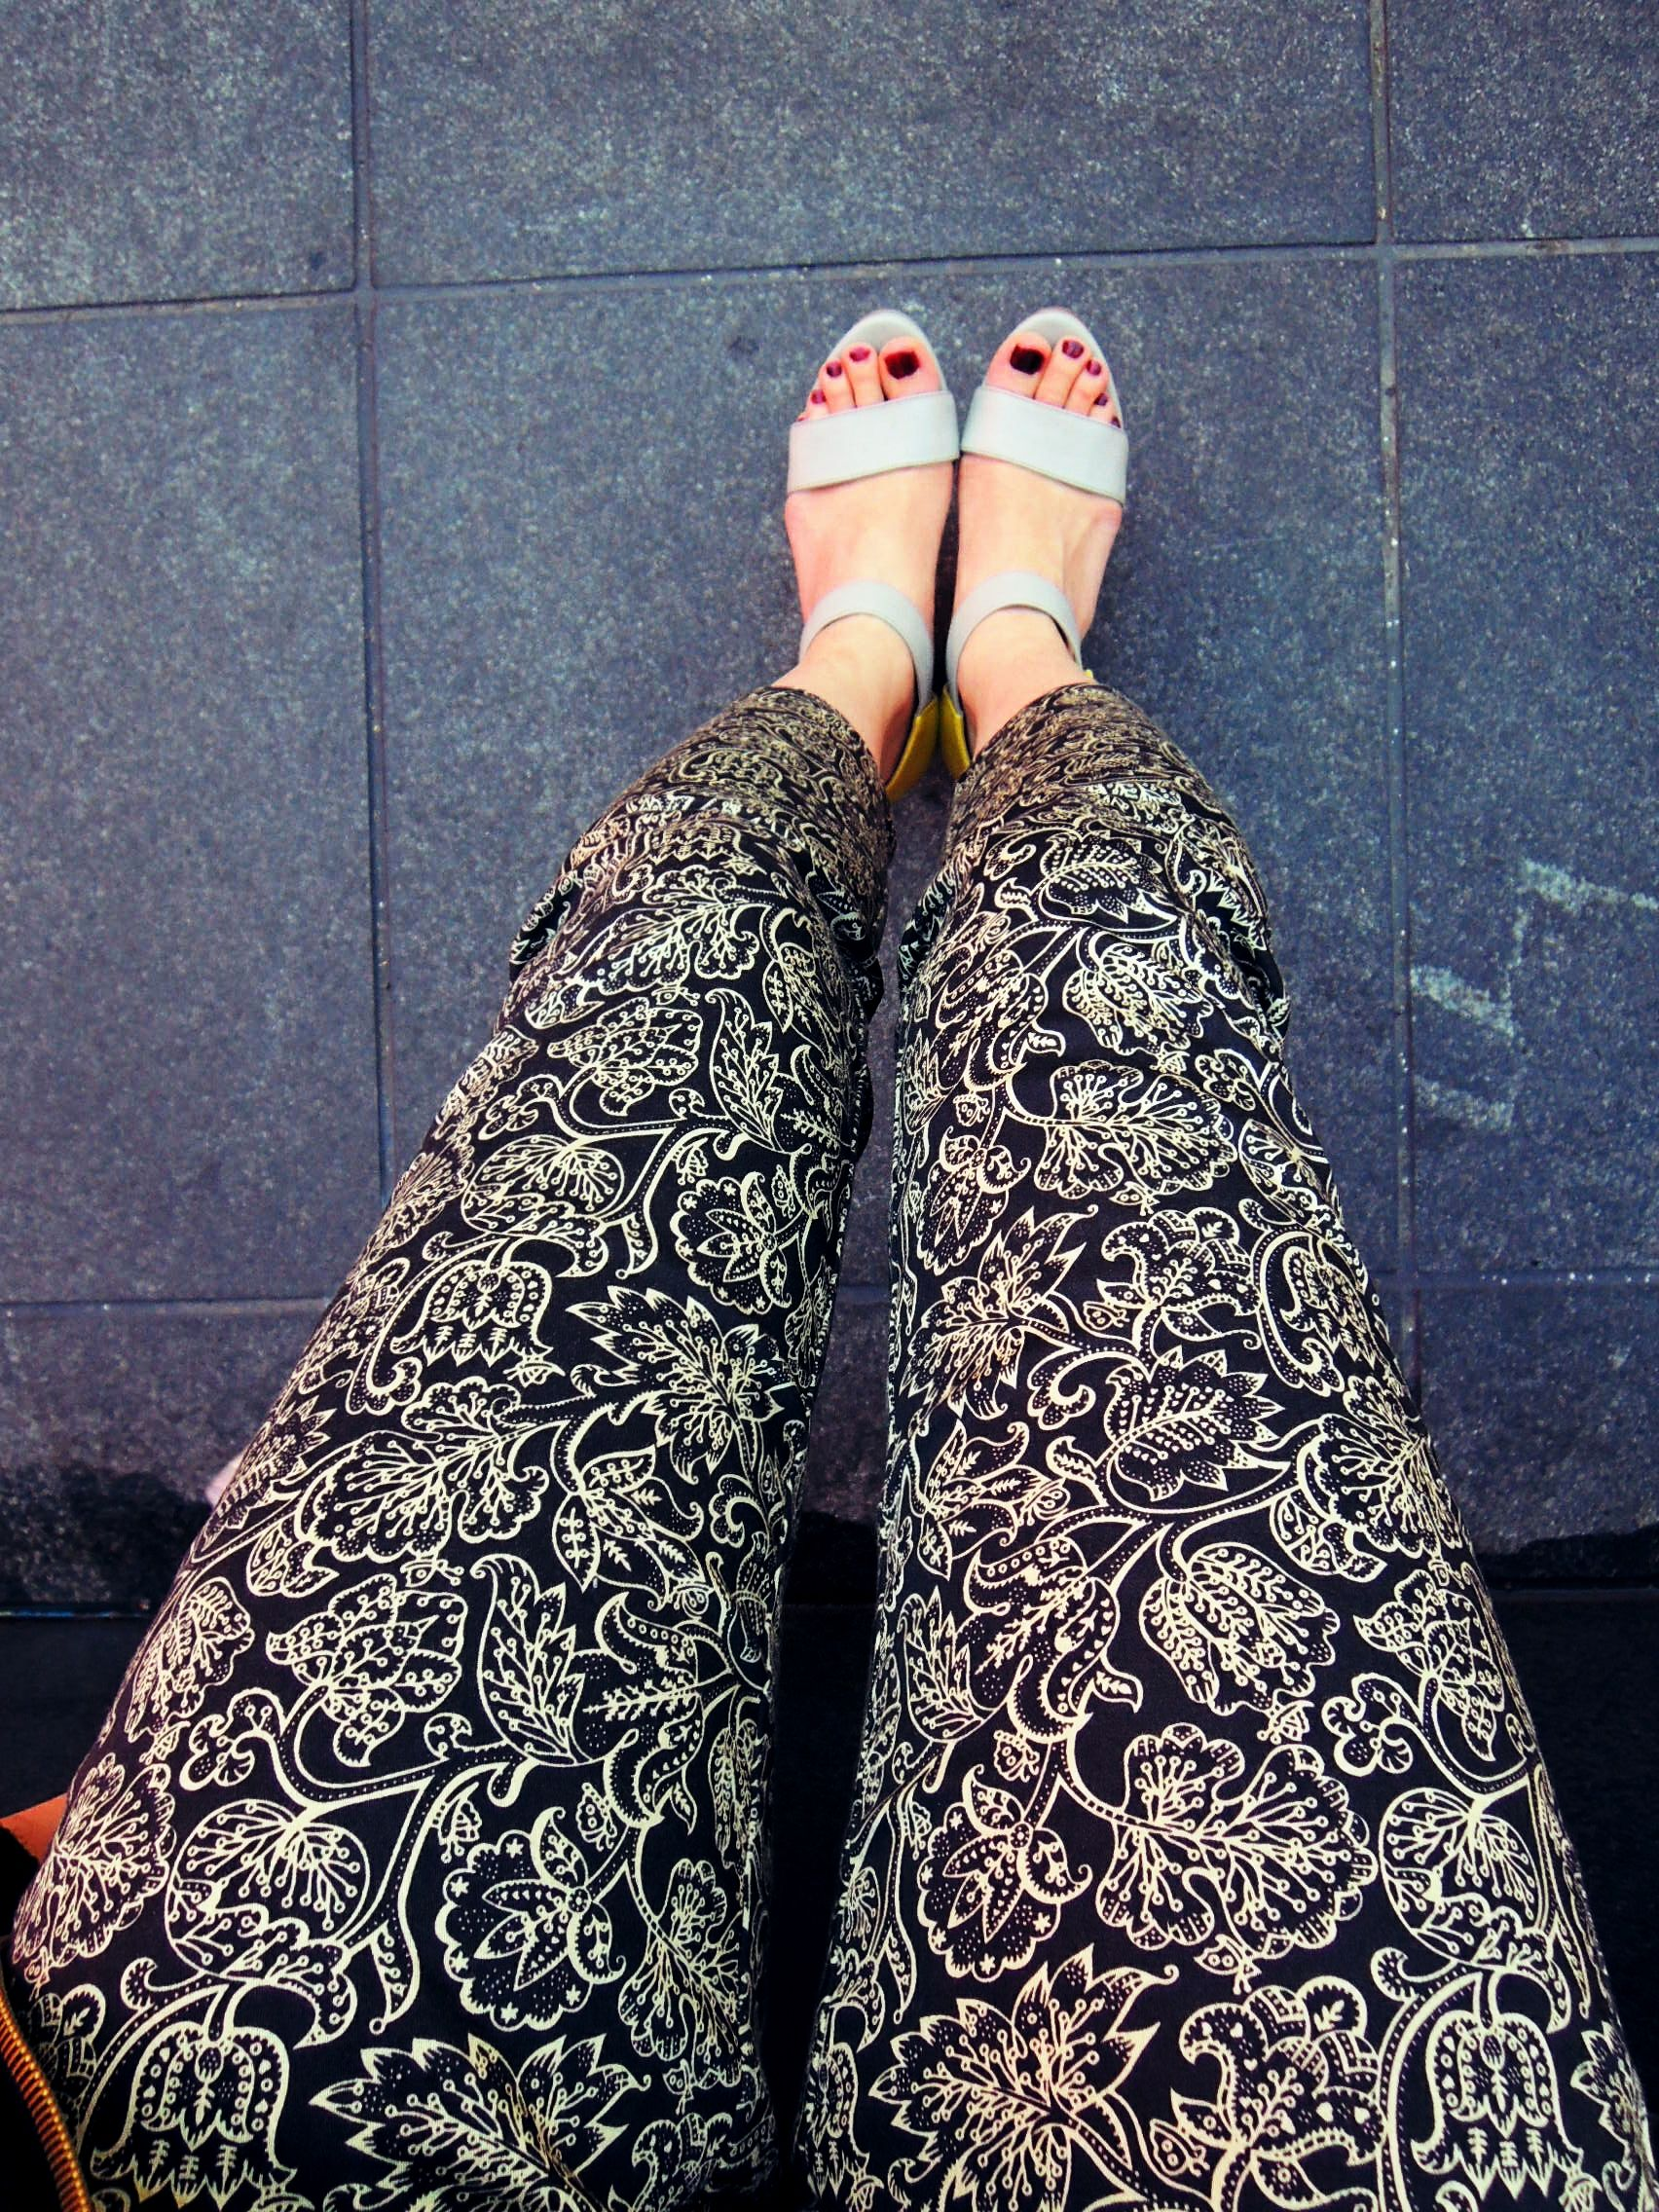 #WedgeSandals #FloralPants #Spring #uniqlo #NYC